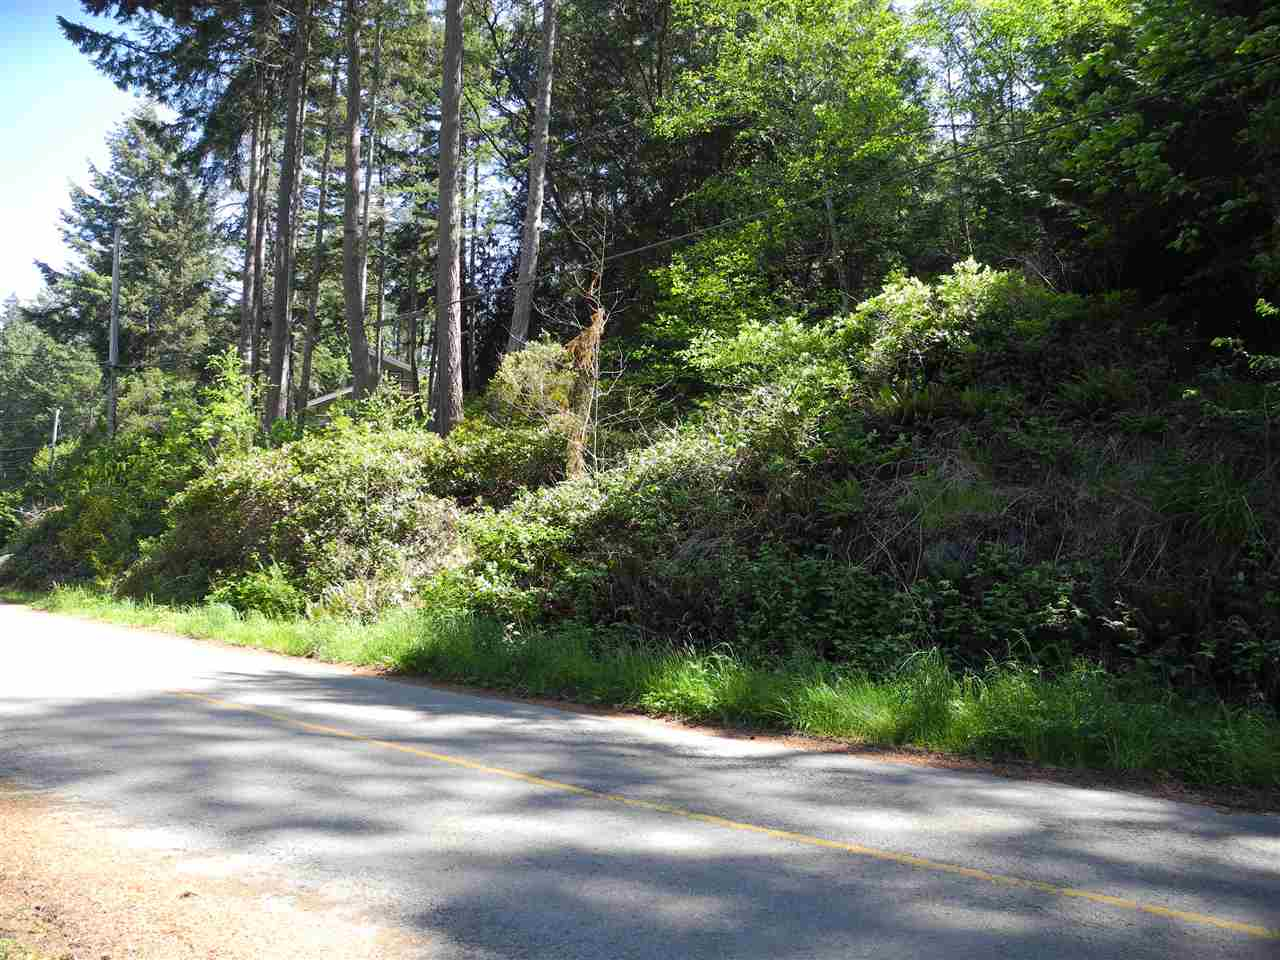 Photo 18: 4436 MCLINTOCK Road in Pender Harbour: Pender Harbour Egmont House for sale (Sunshine Coast)  : MLS(r) # R2068891